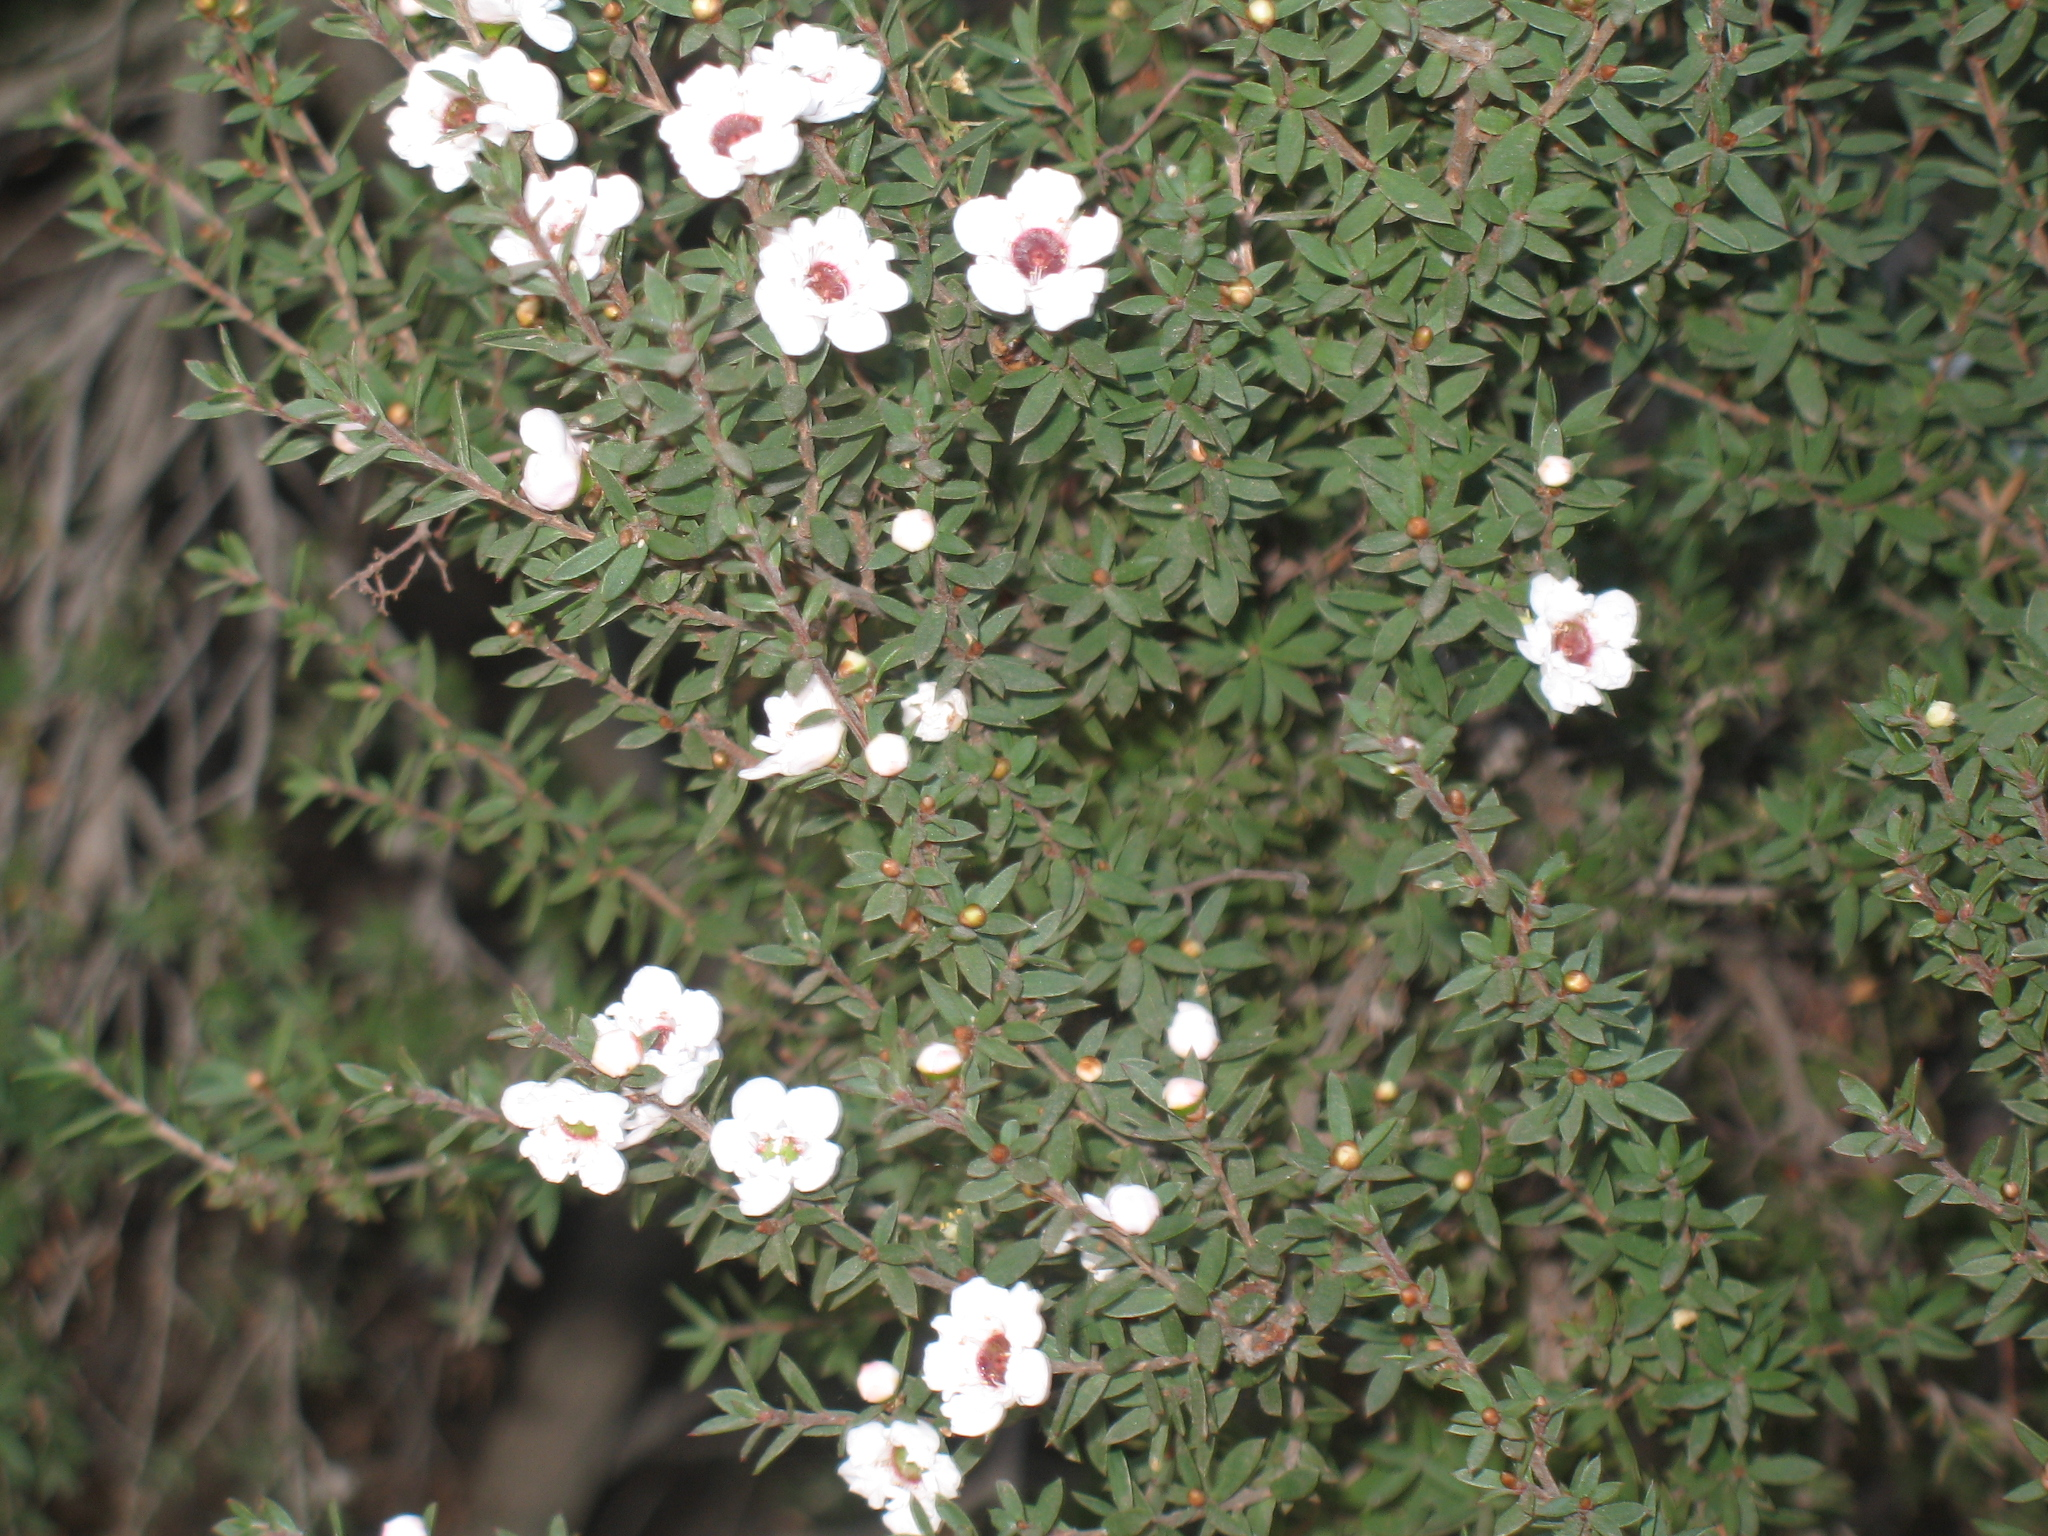 Leptospermum scoparium 'Snow White'  / Leptospermum scoparium 'Snow White'